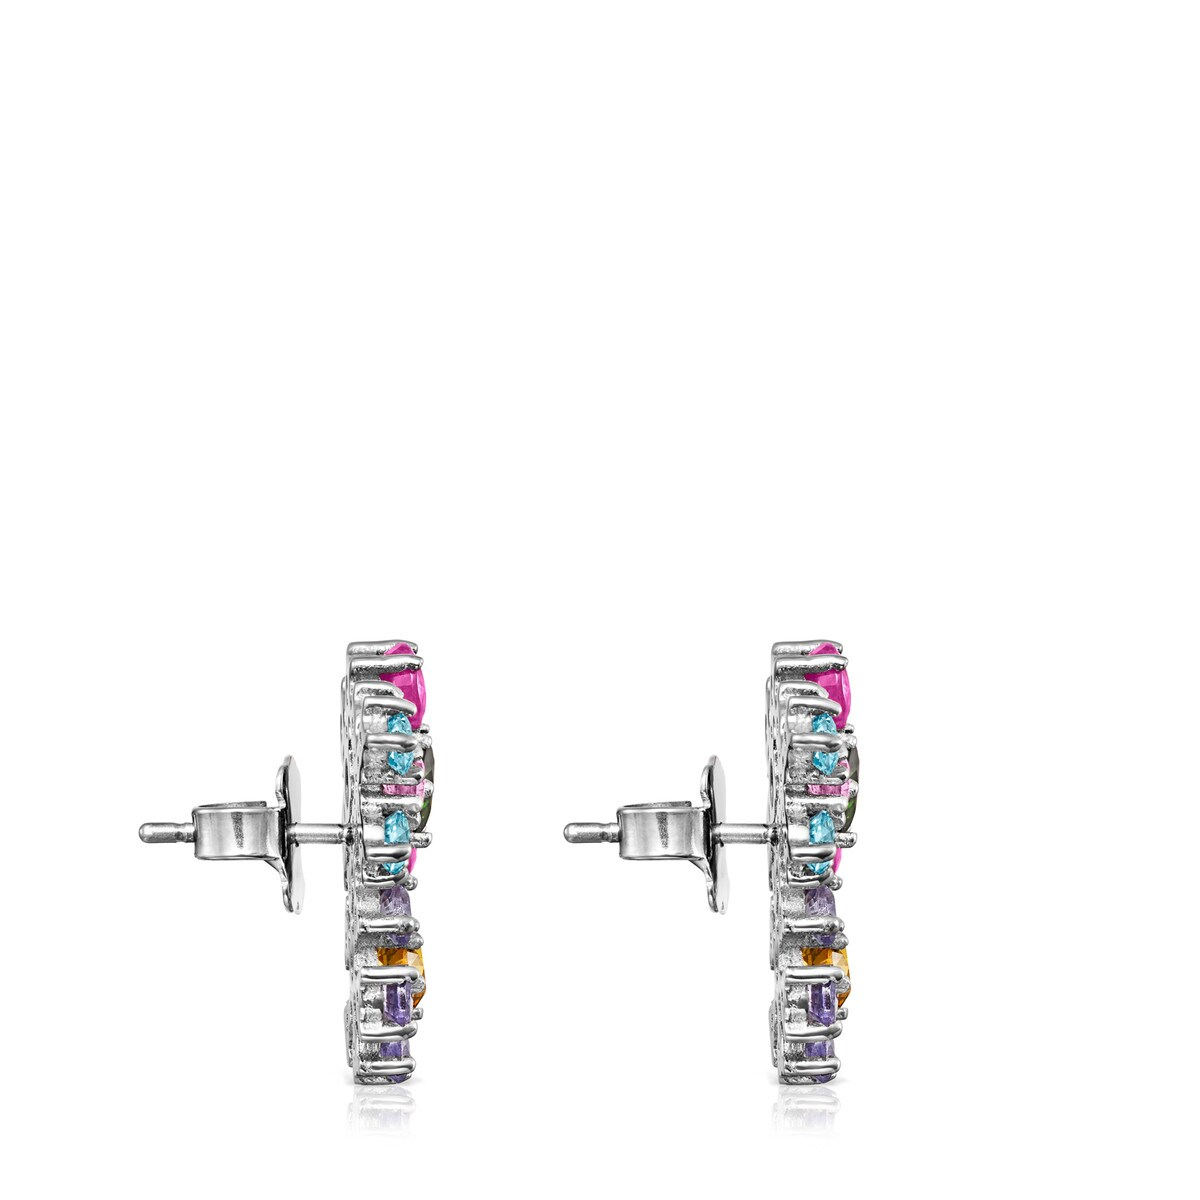 Titanium Real Sisy Earrings with Gemstones